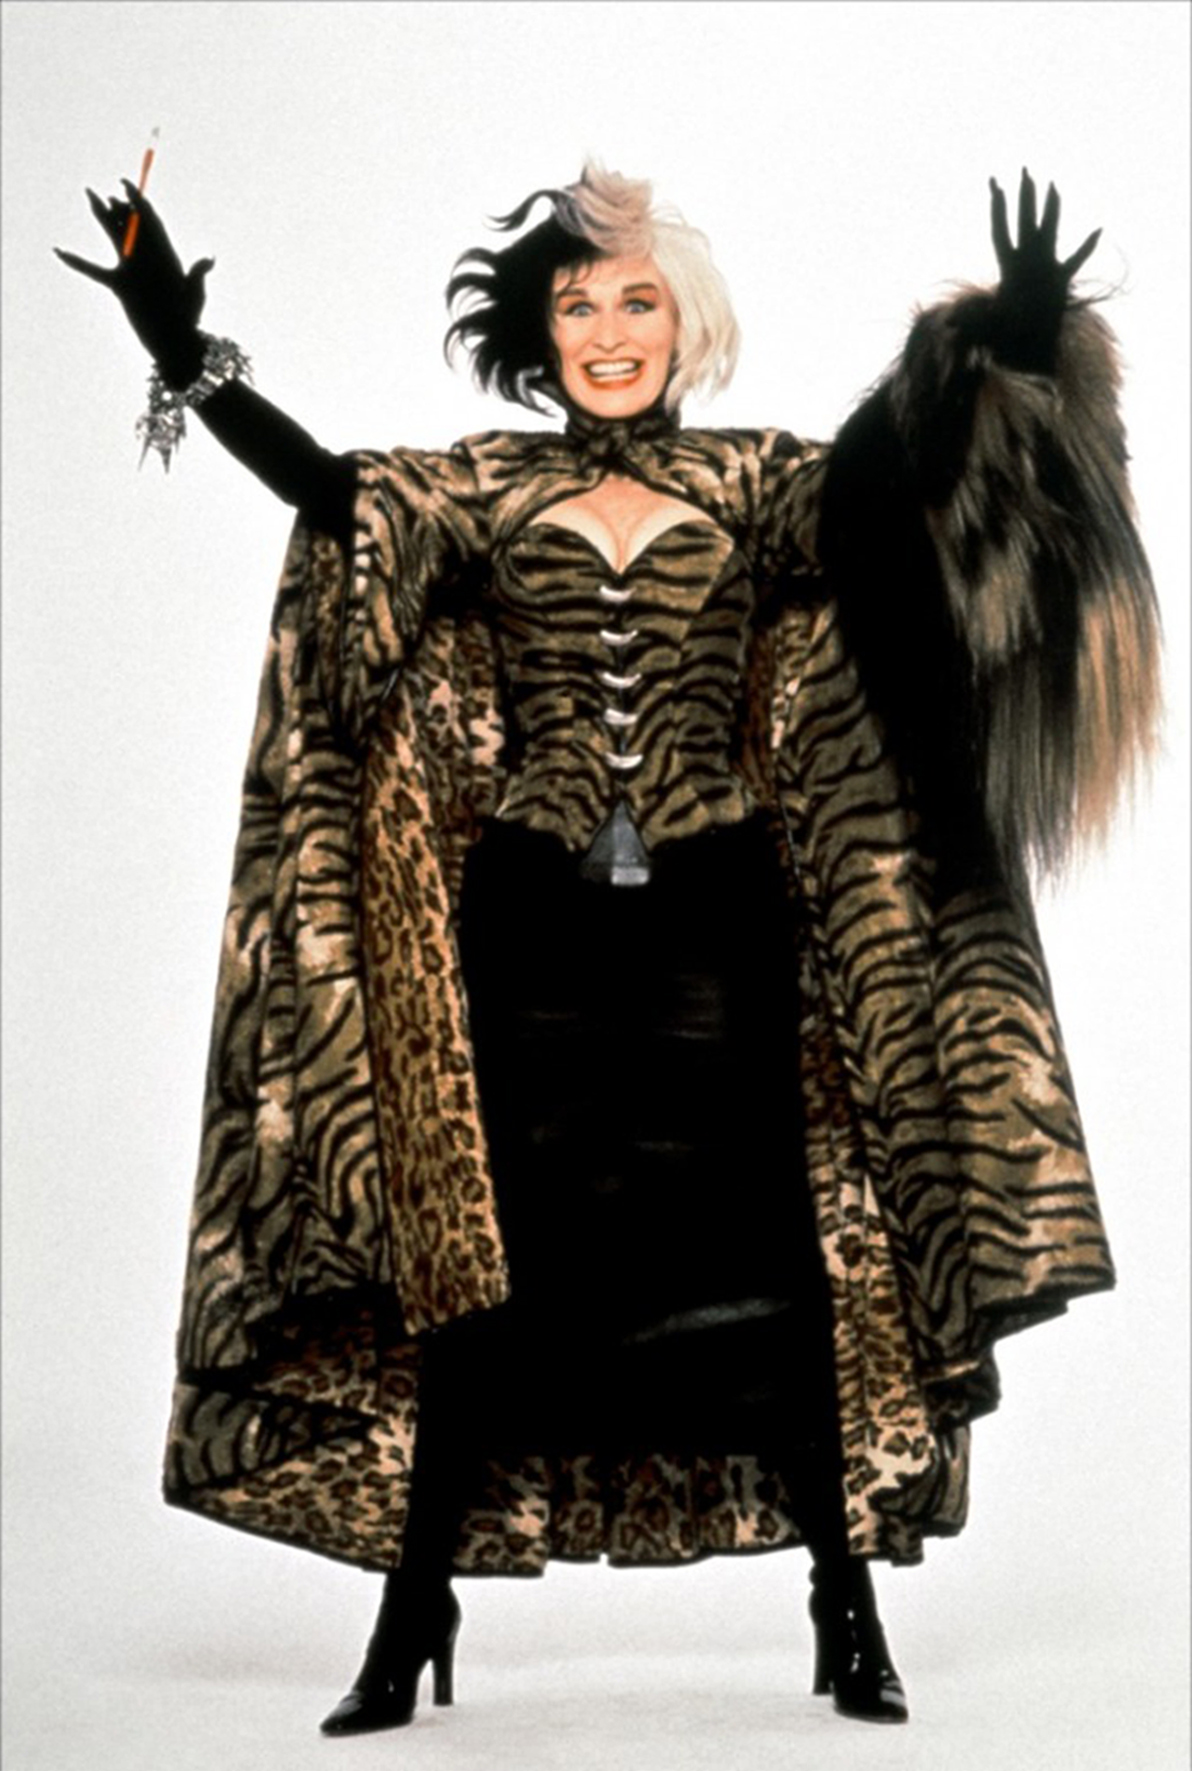 101 Dalmatians - Glenn Close Photo (32368194) - Fanpop